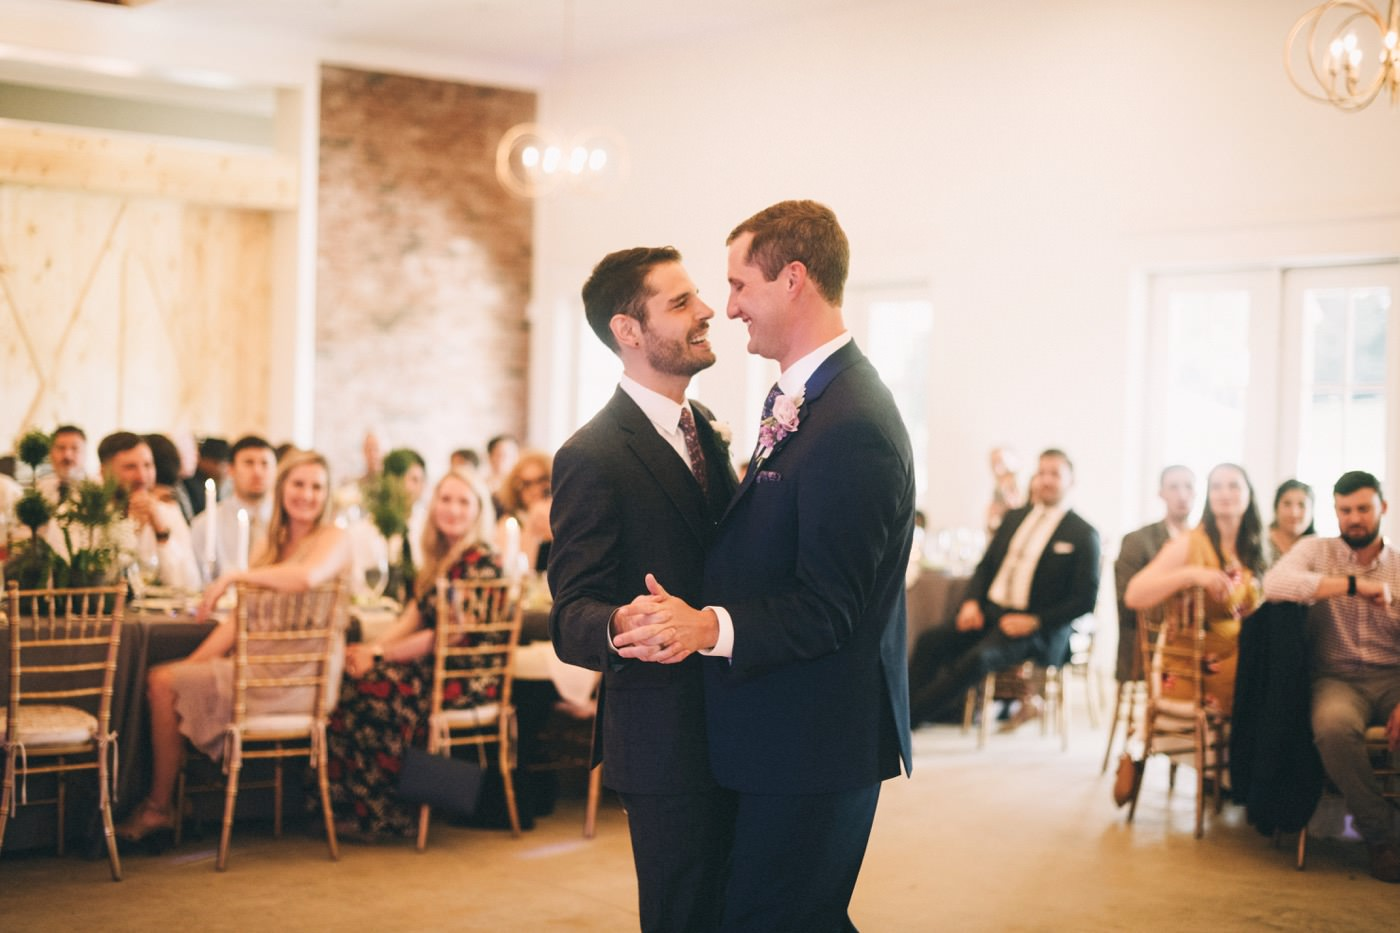 Will-Nate-Louisville-LGBTQ-Pride-Month-Kentucky-Wedding-By-Sarah-Katherine-Davis-Photograpy0041.JPG